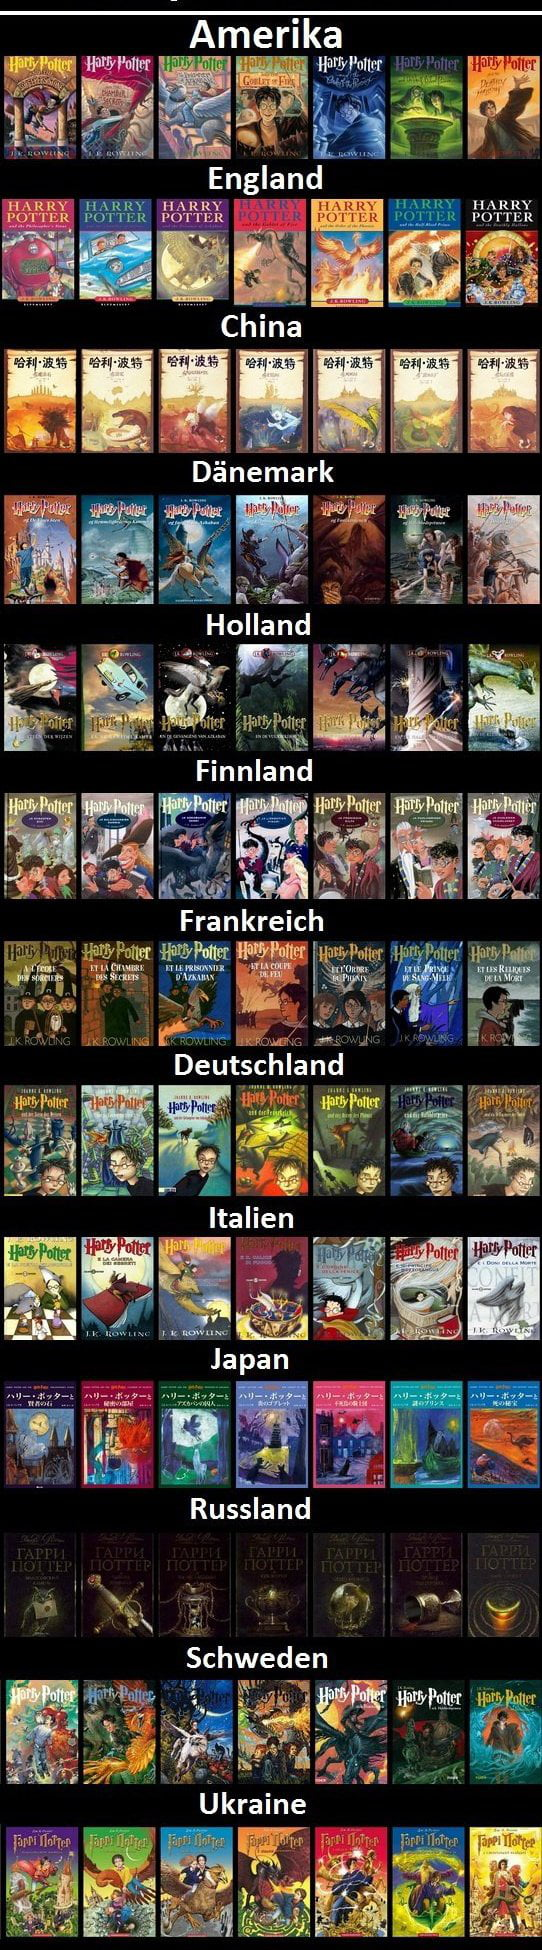 Harry Potter book covers from different countries. What's your favorite?